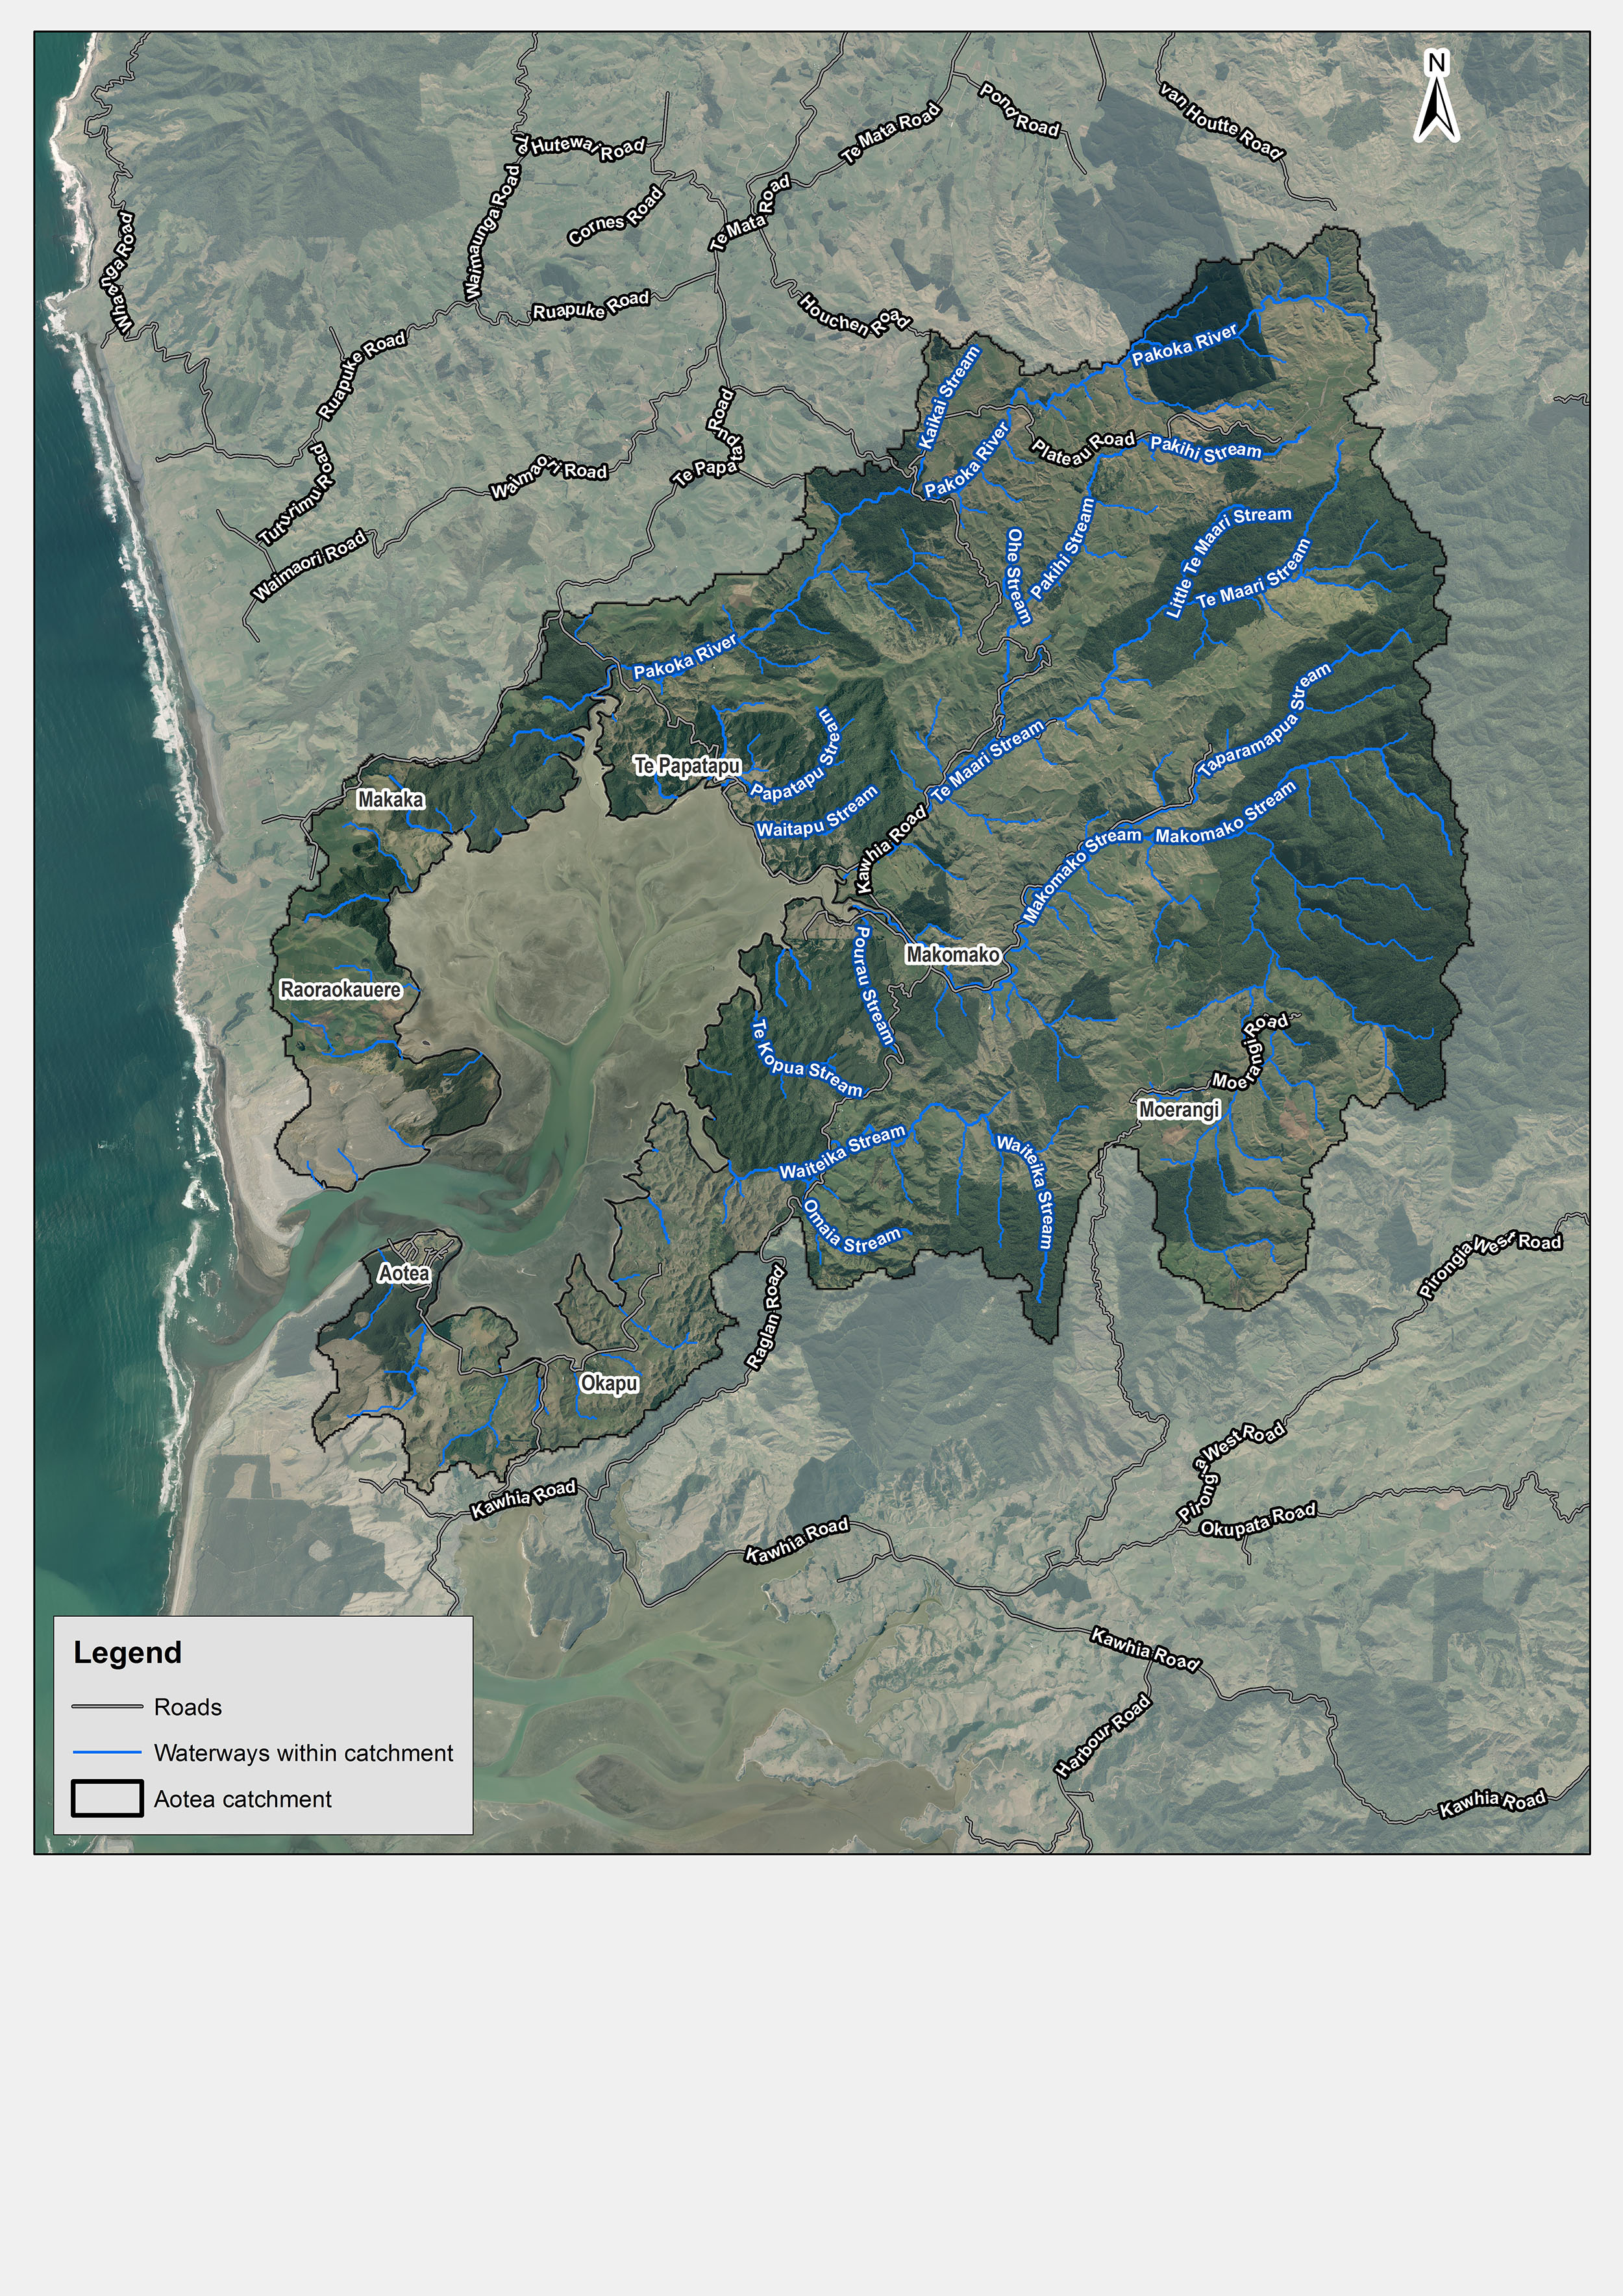 Aotea Catchment Overview Map1